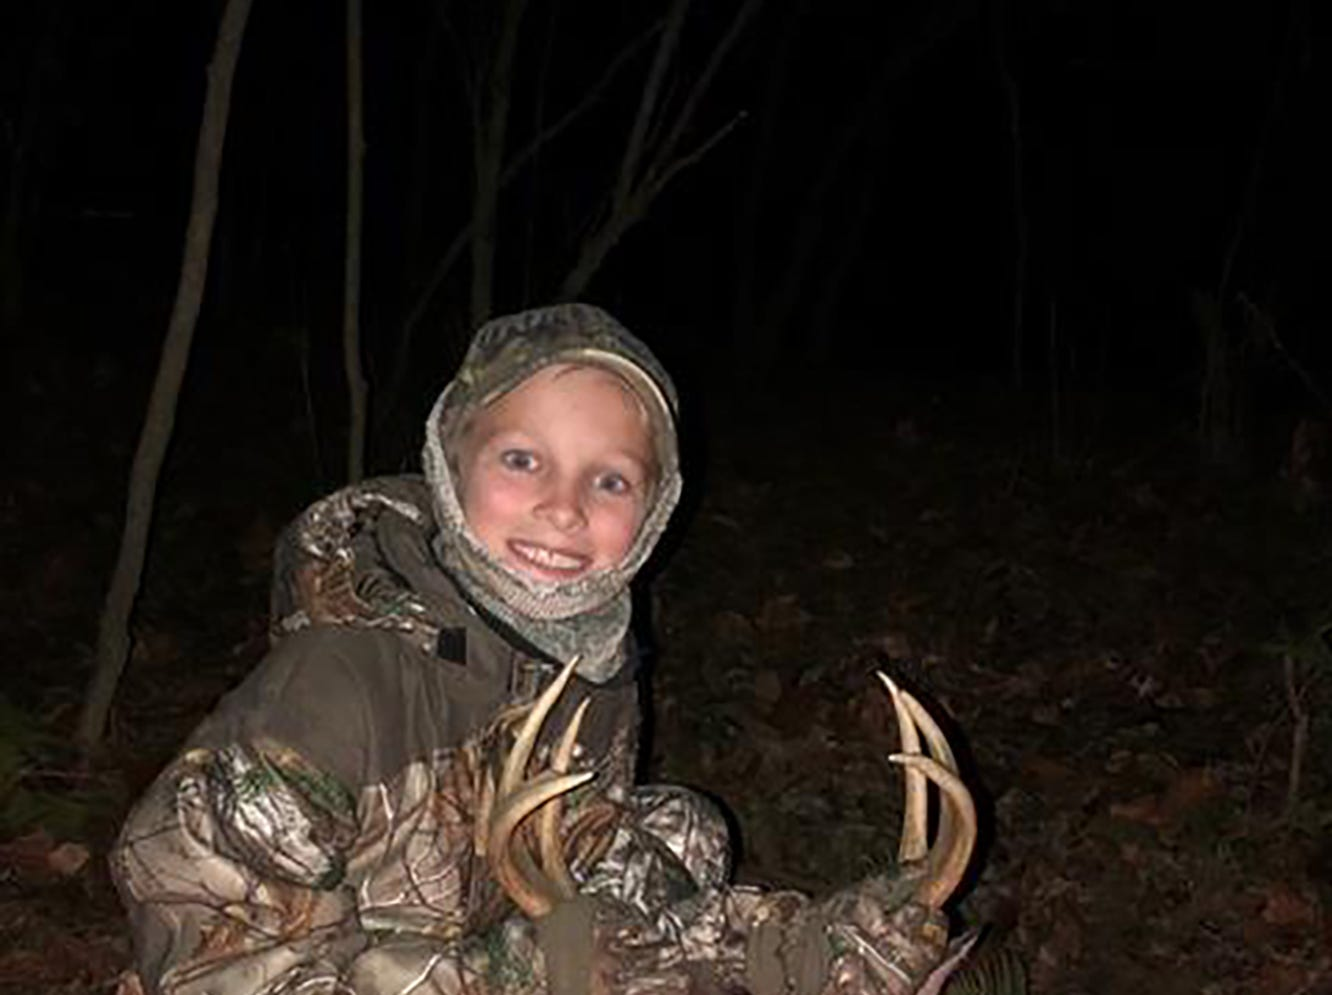 Nick Lee, 9, of Vicksburg, harvested his first buck while hunting with his grandfather in Bovina.